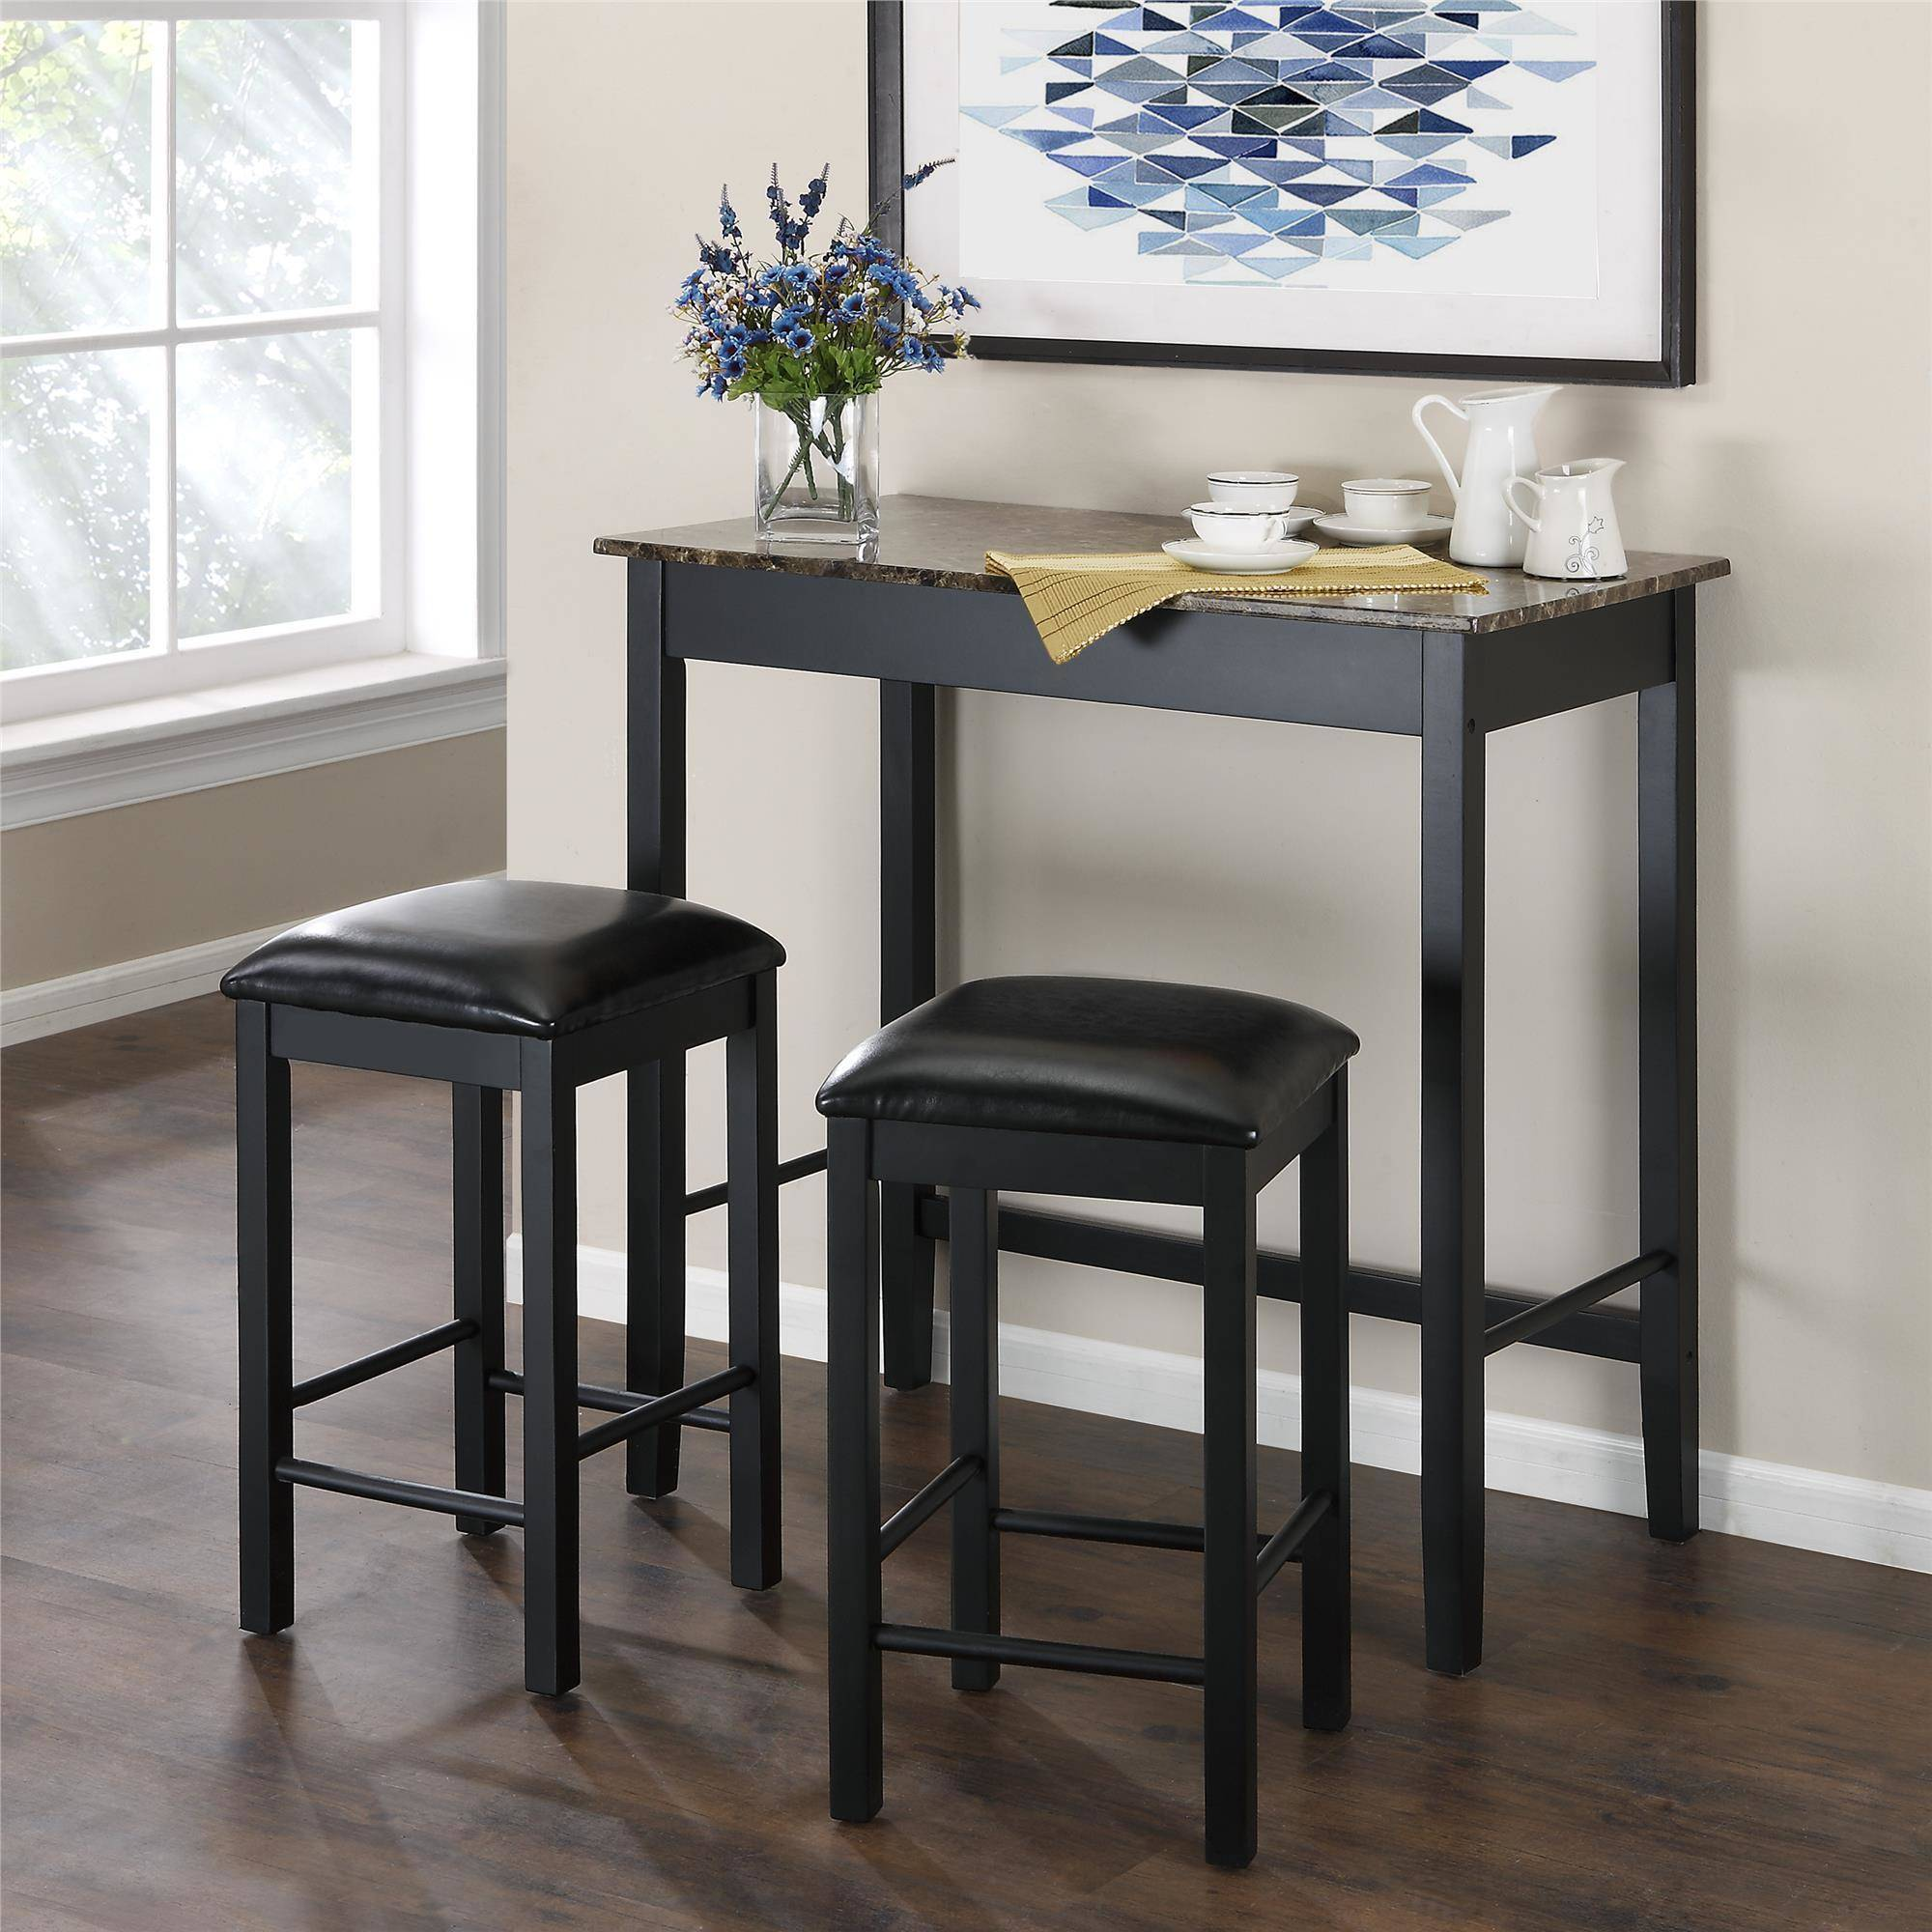 Dorel Living Devyn 3-Piece Faux Marble Pub Dining Set, Black